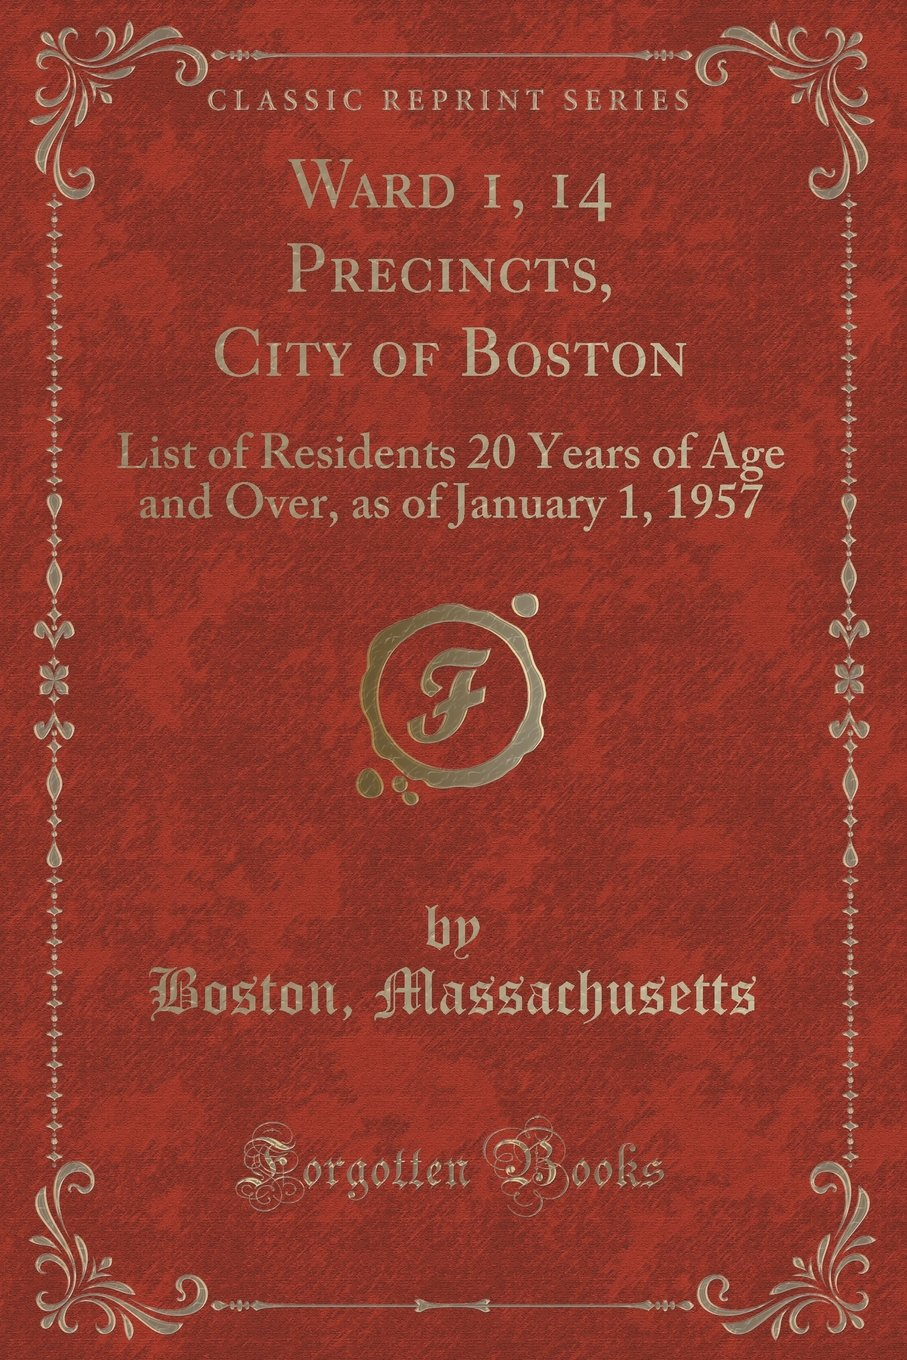 Download Ward 1, 14 Precincts, City of Boston: List of Residents 20 Years of Age and Over, as of January 1, 1957 (Classic Reprint) ebook